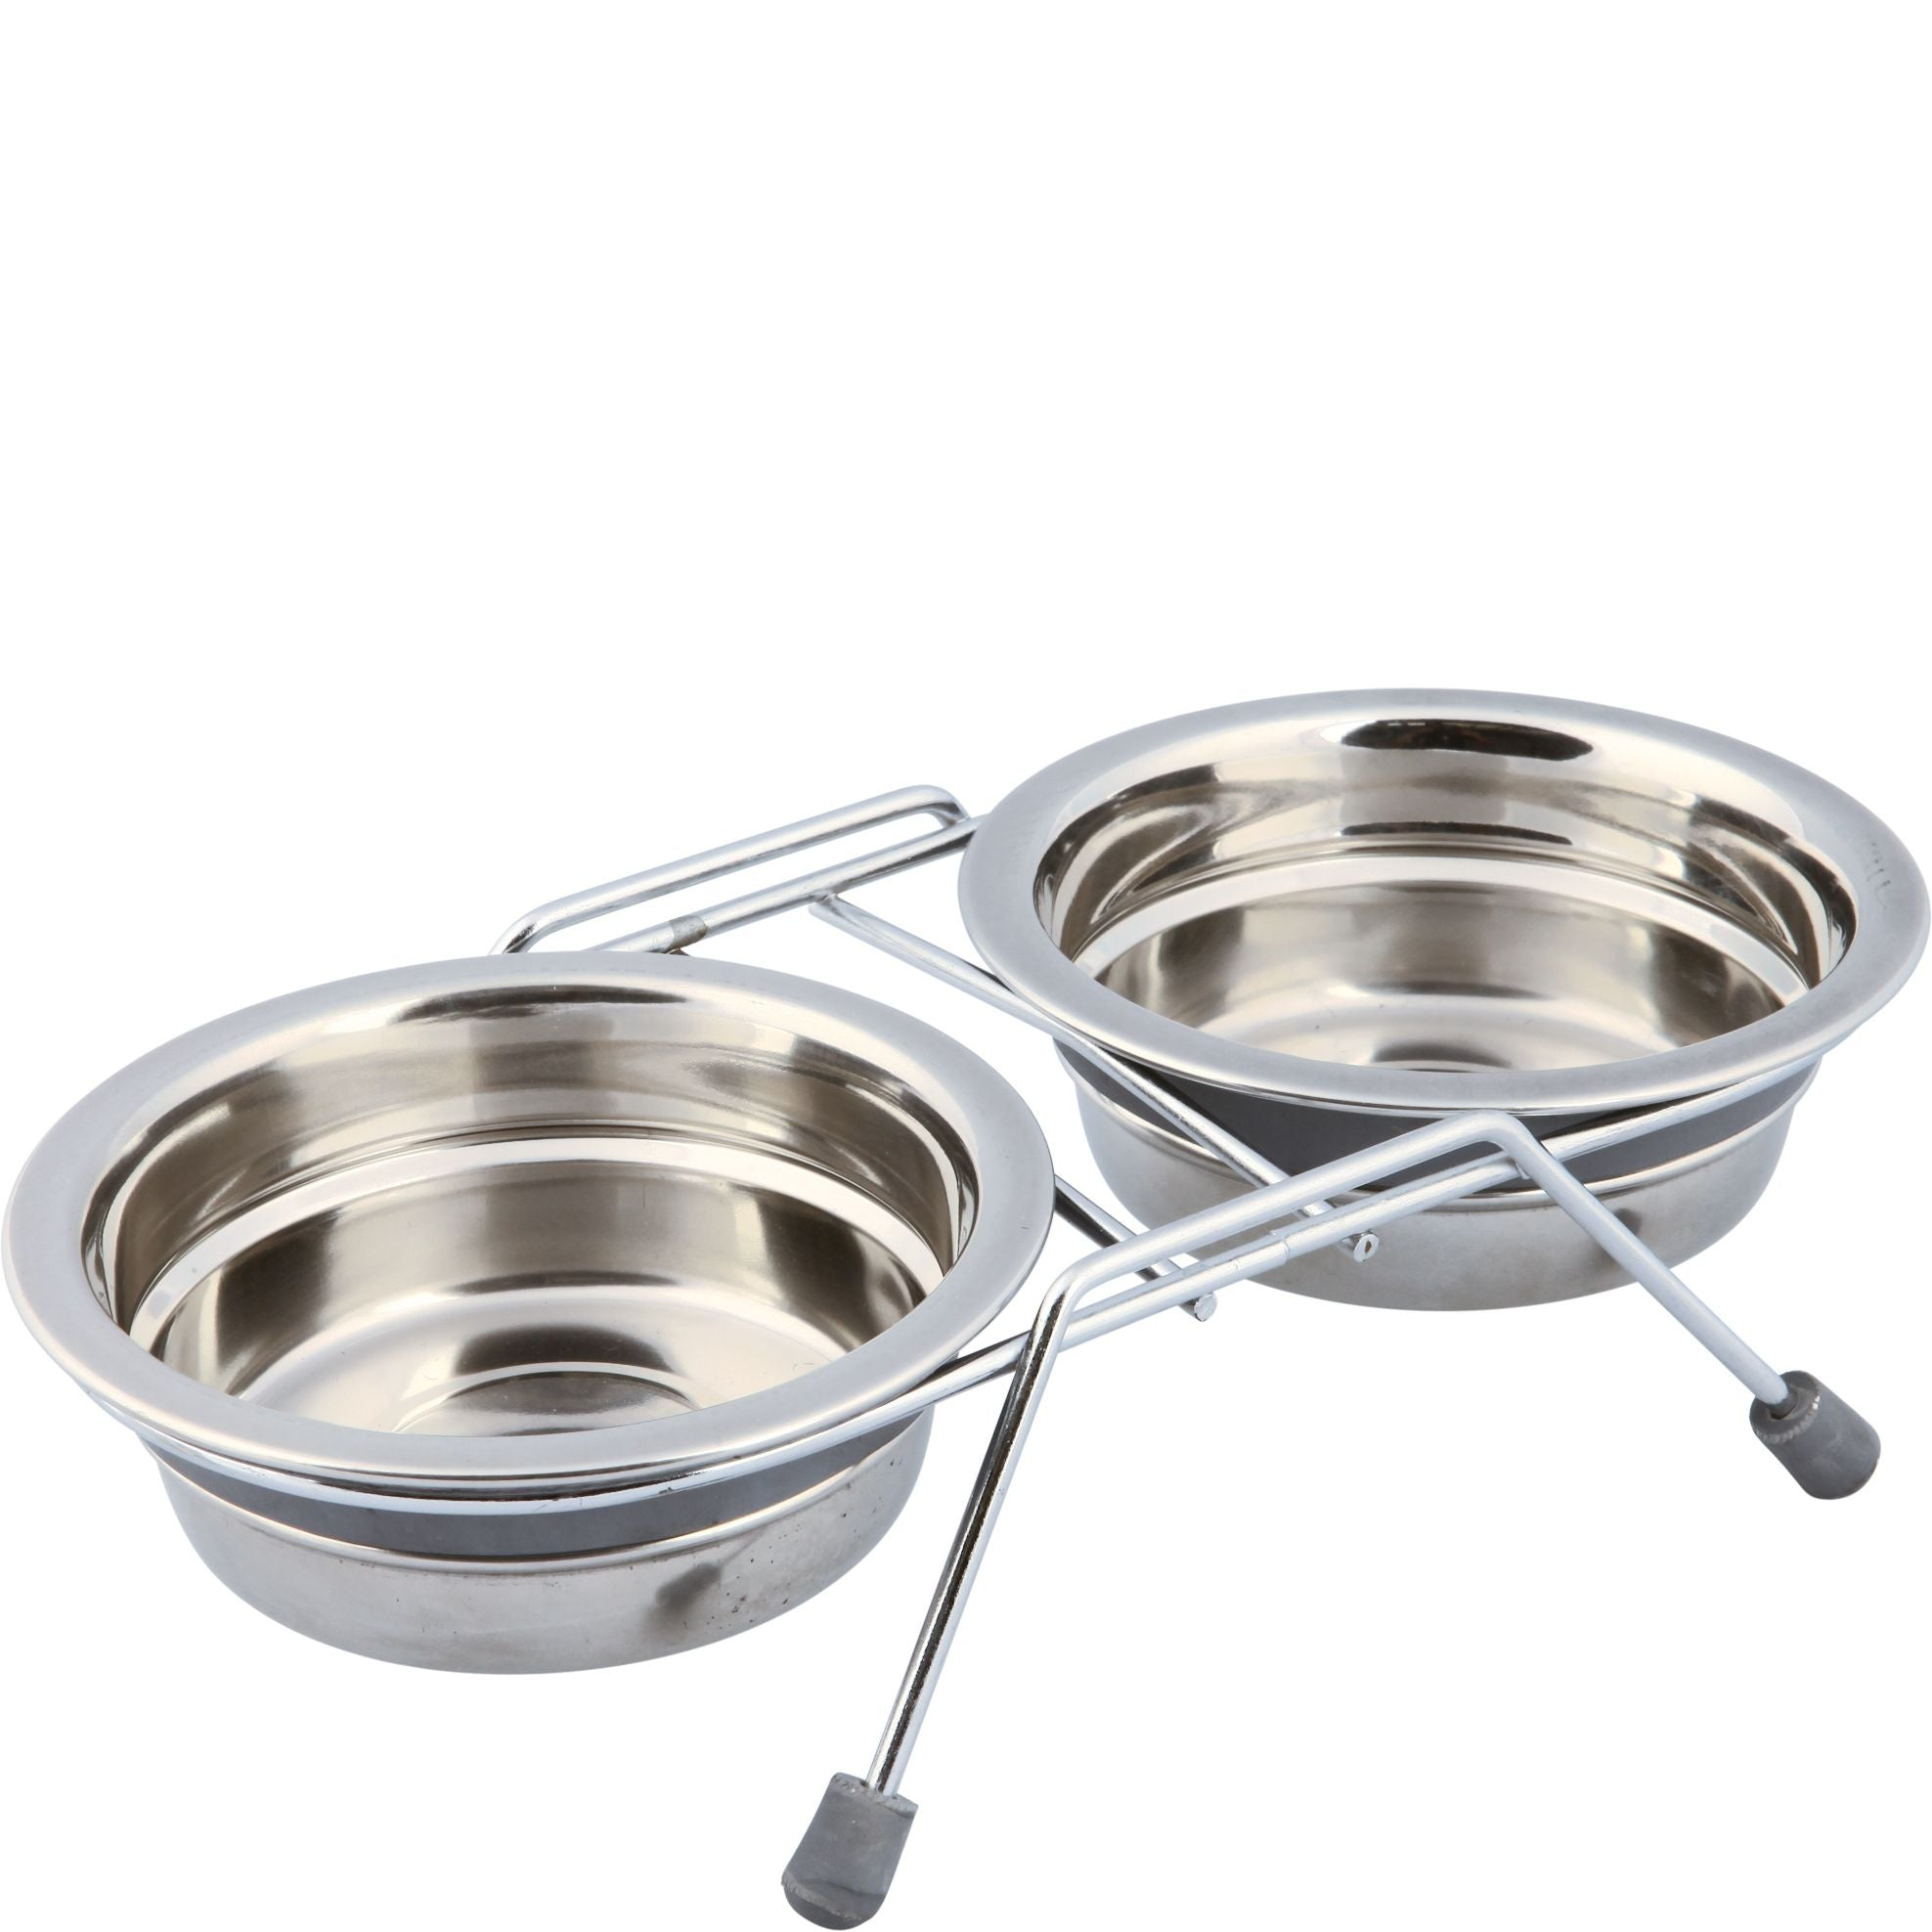 Stainless Steel Silent Double Diner